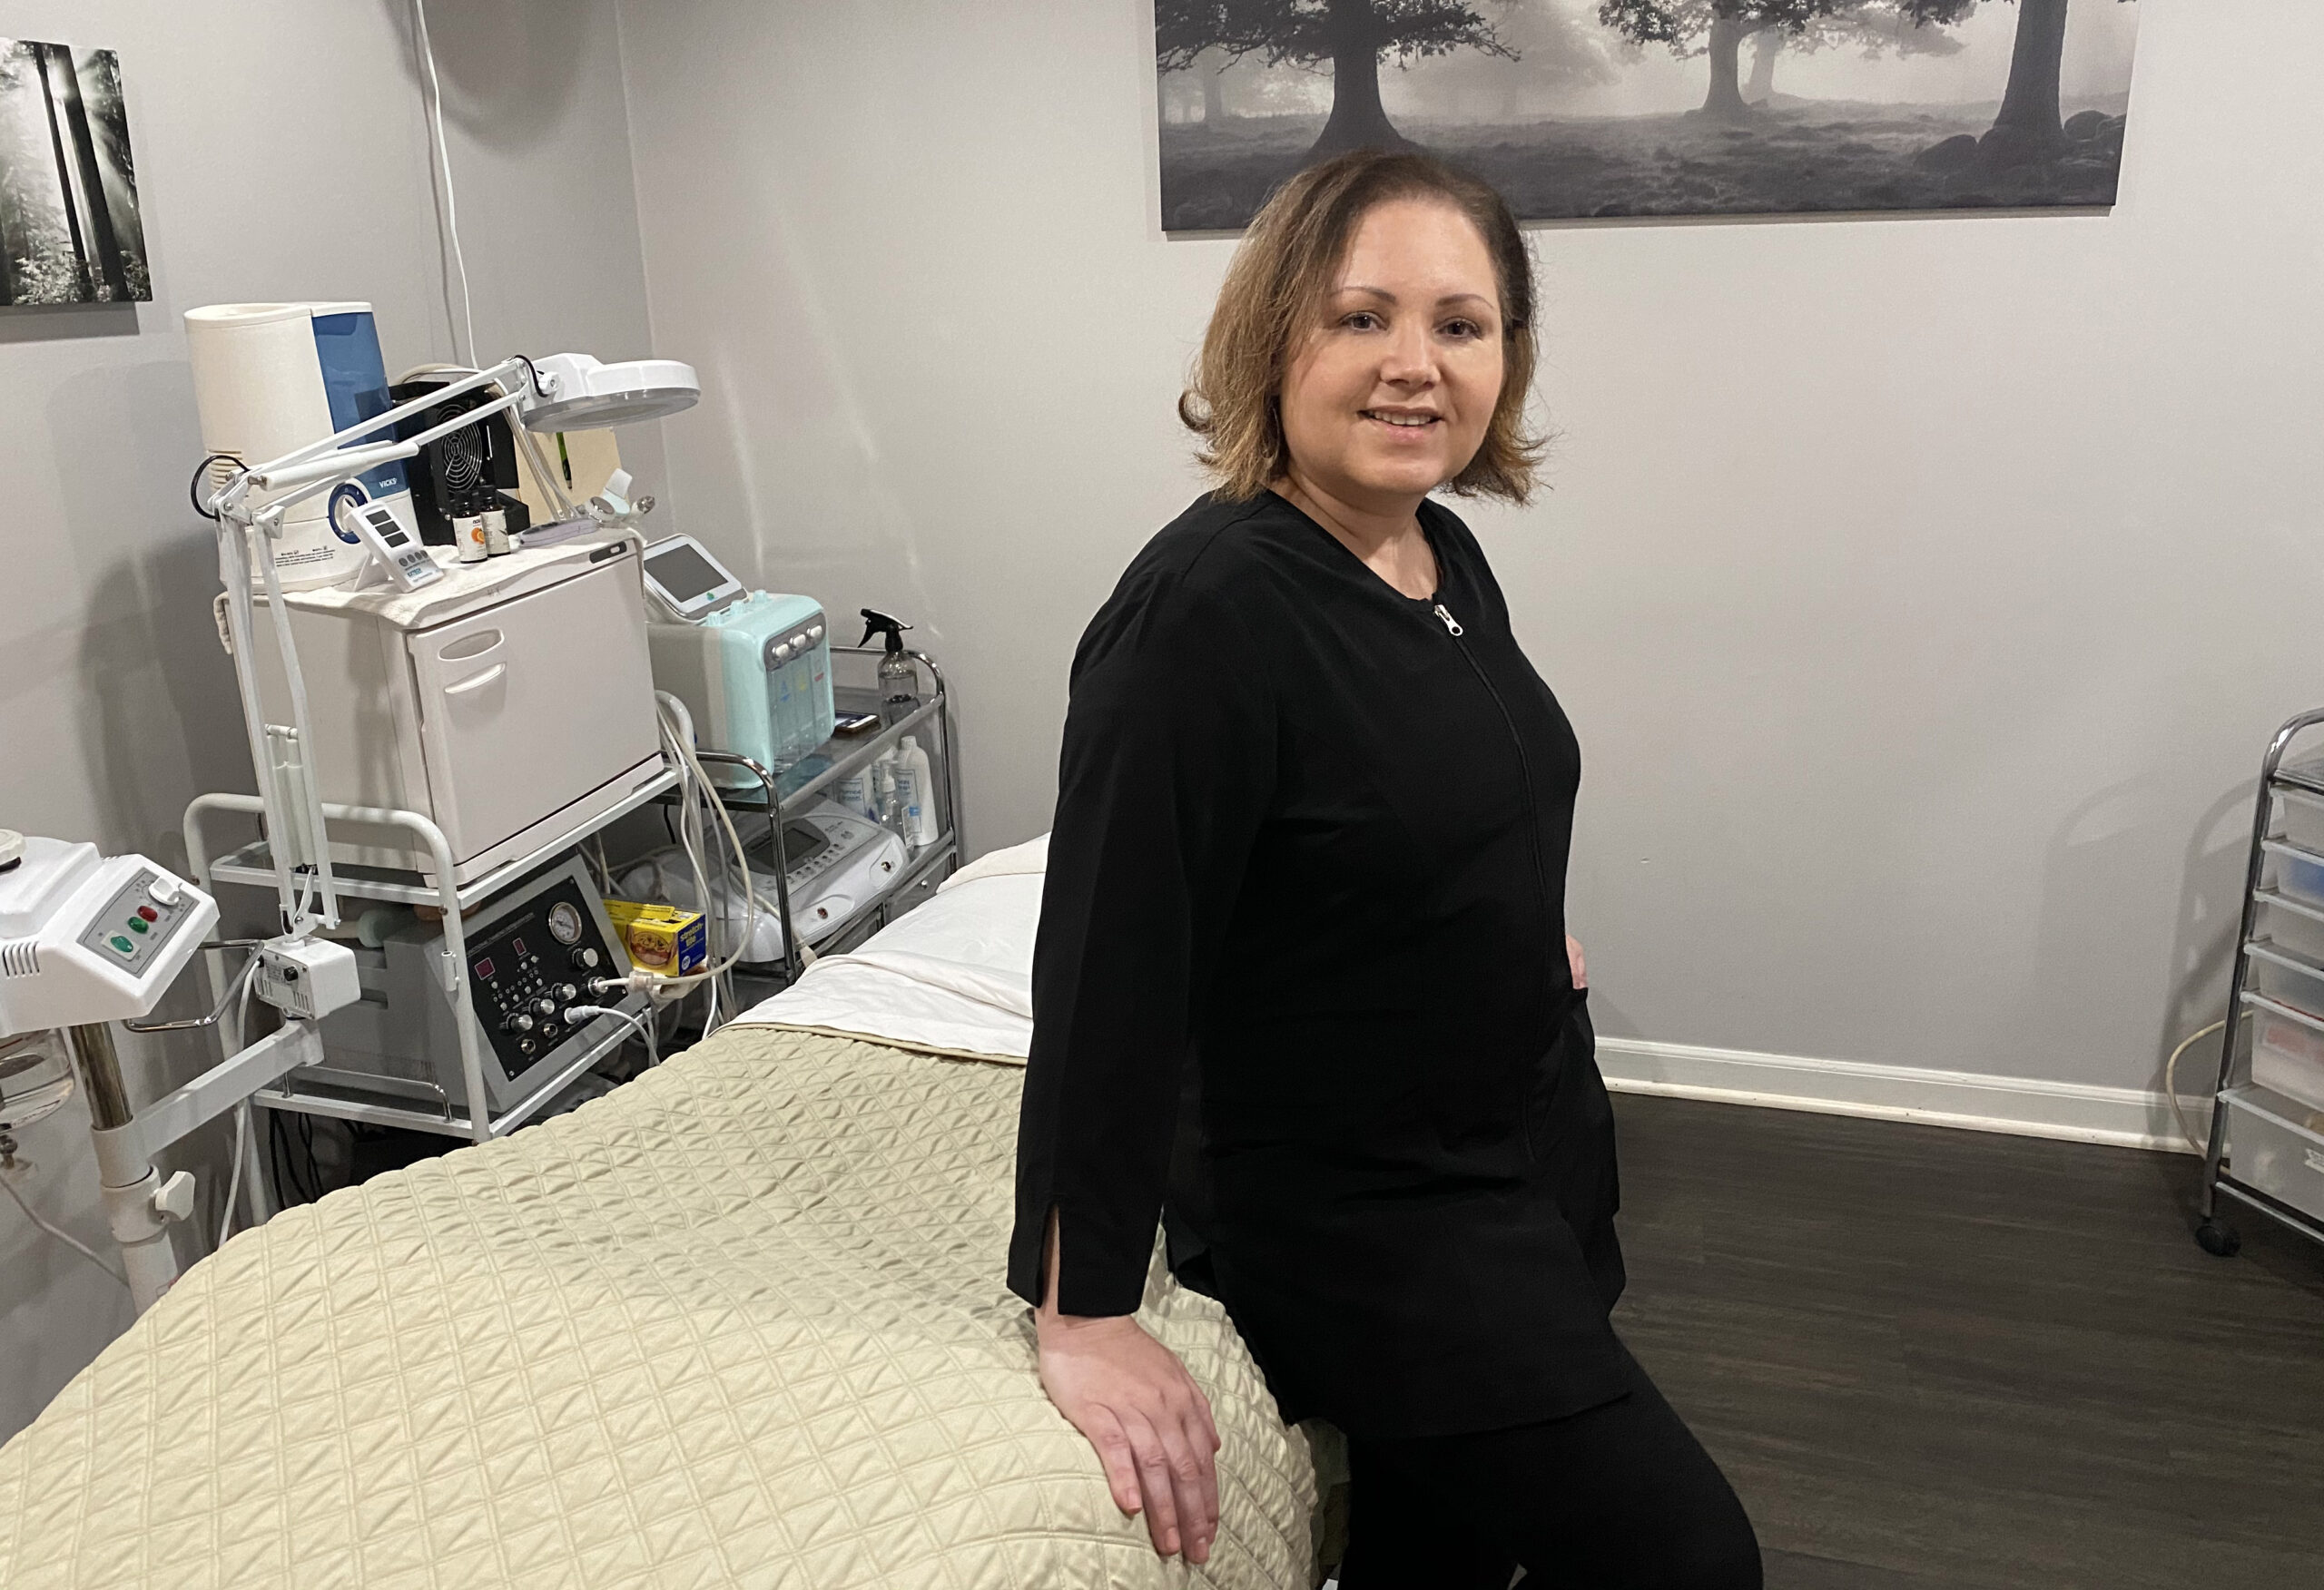 A Conversation with Spa Owner Dee Suarez-Diaz About Reopening